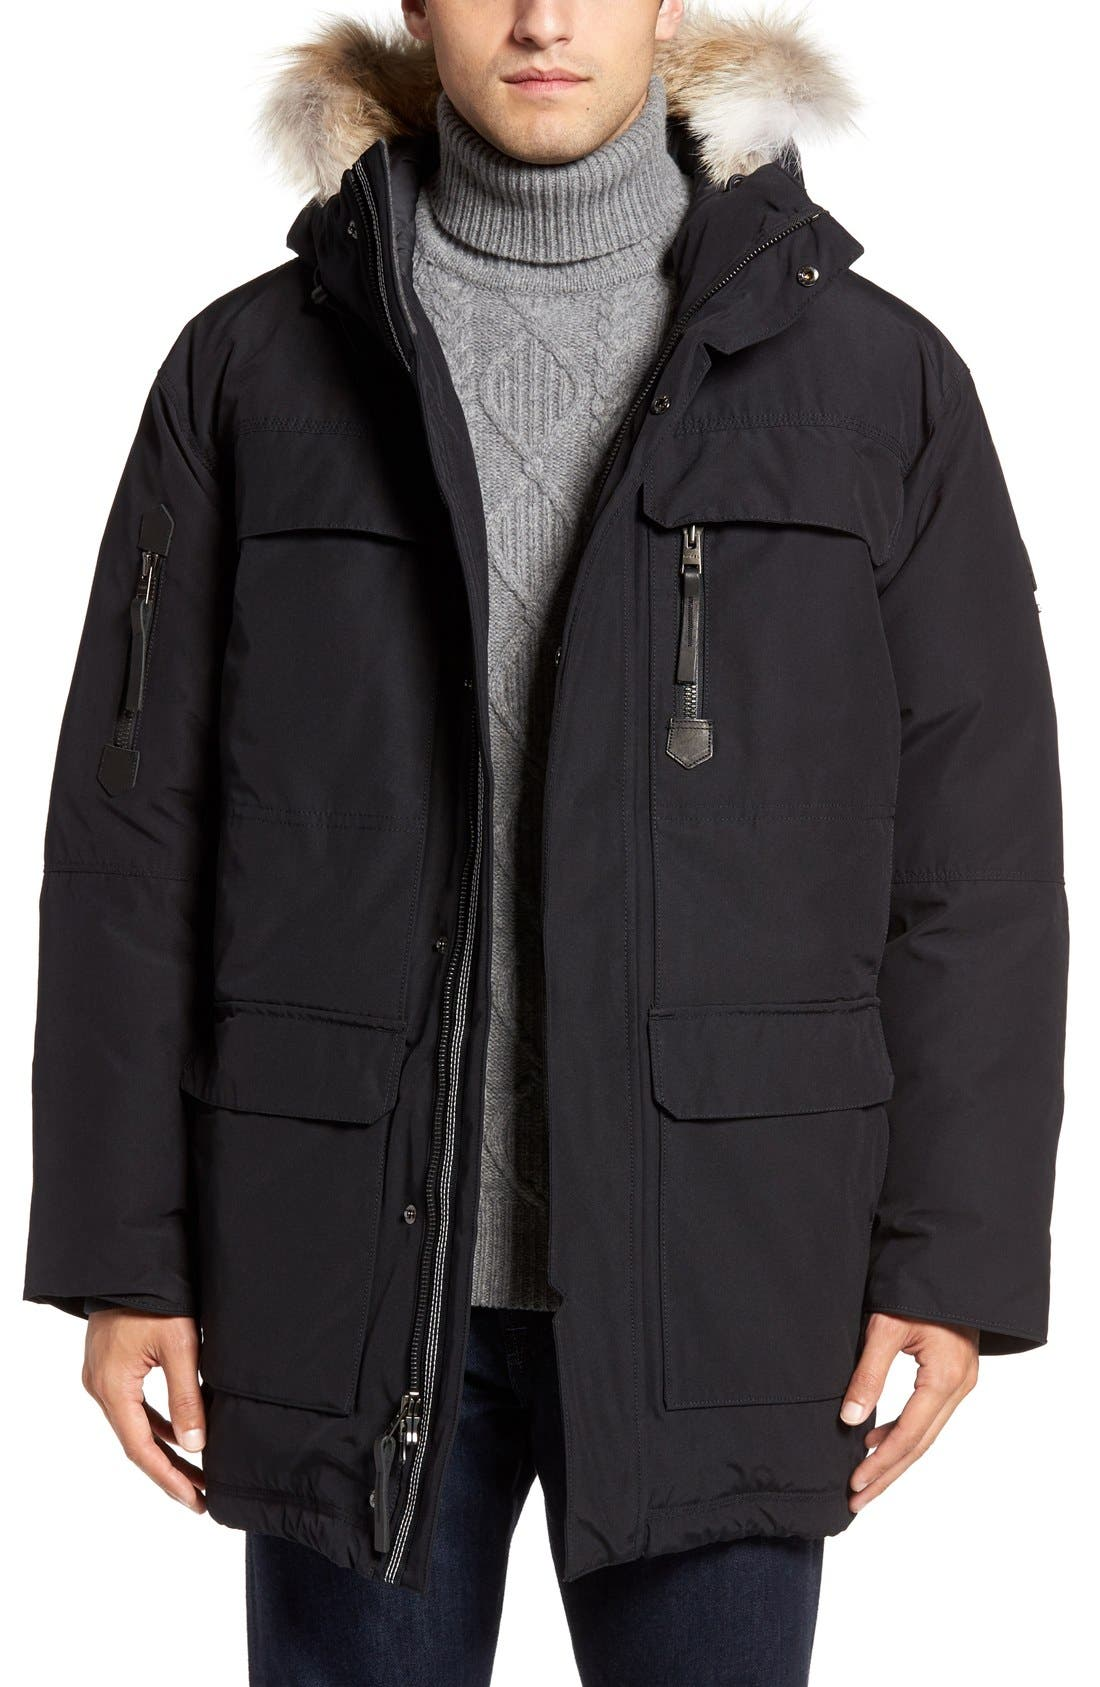 Caribou Water Resistant Down Parka with Genuine Coyote Fur Trim,                             Main thumbnail 1, color,                             010